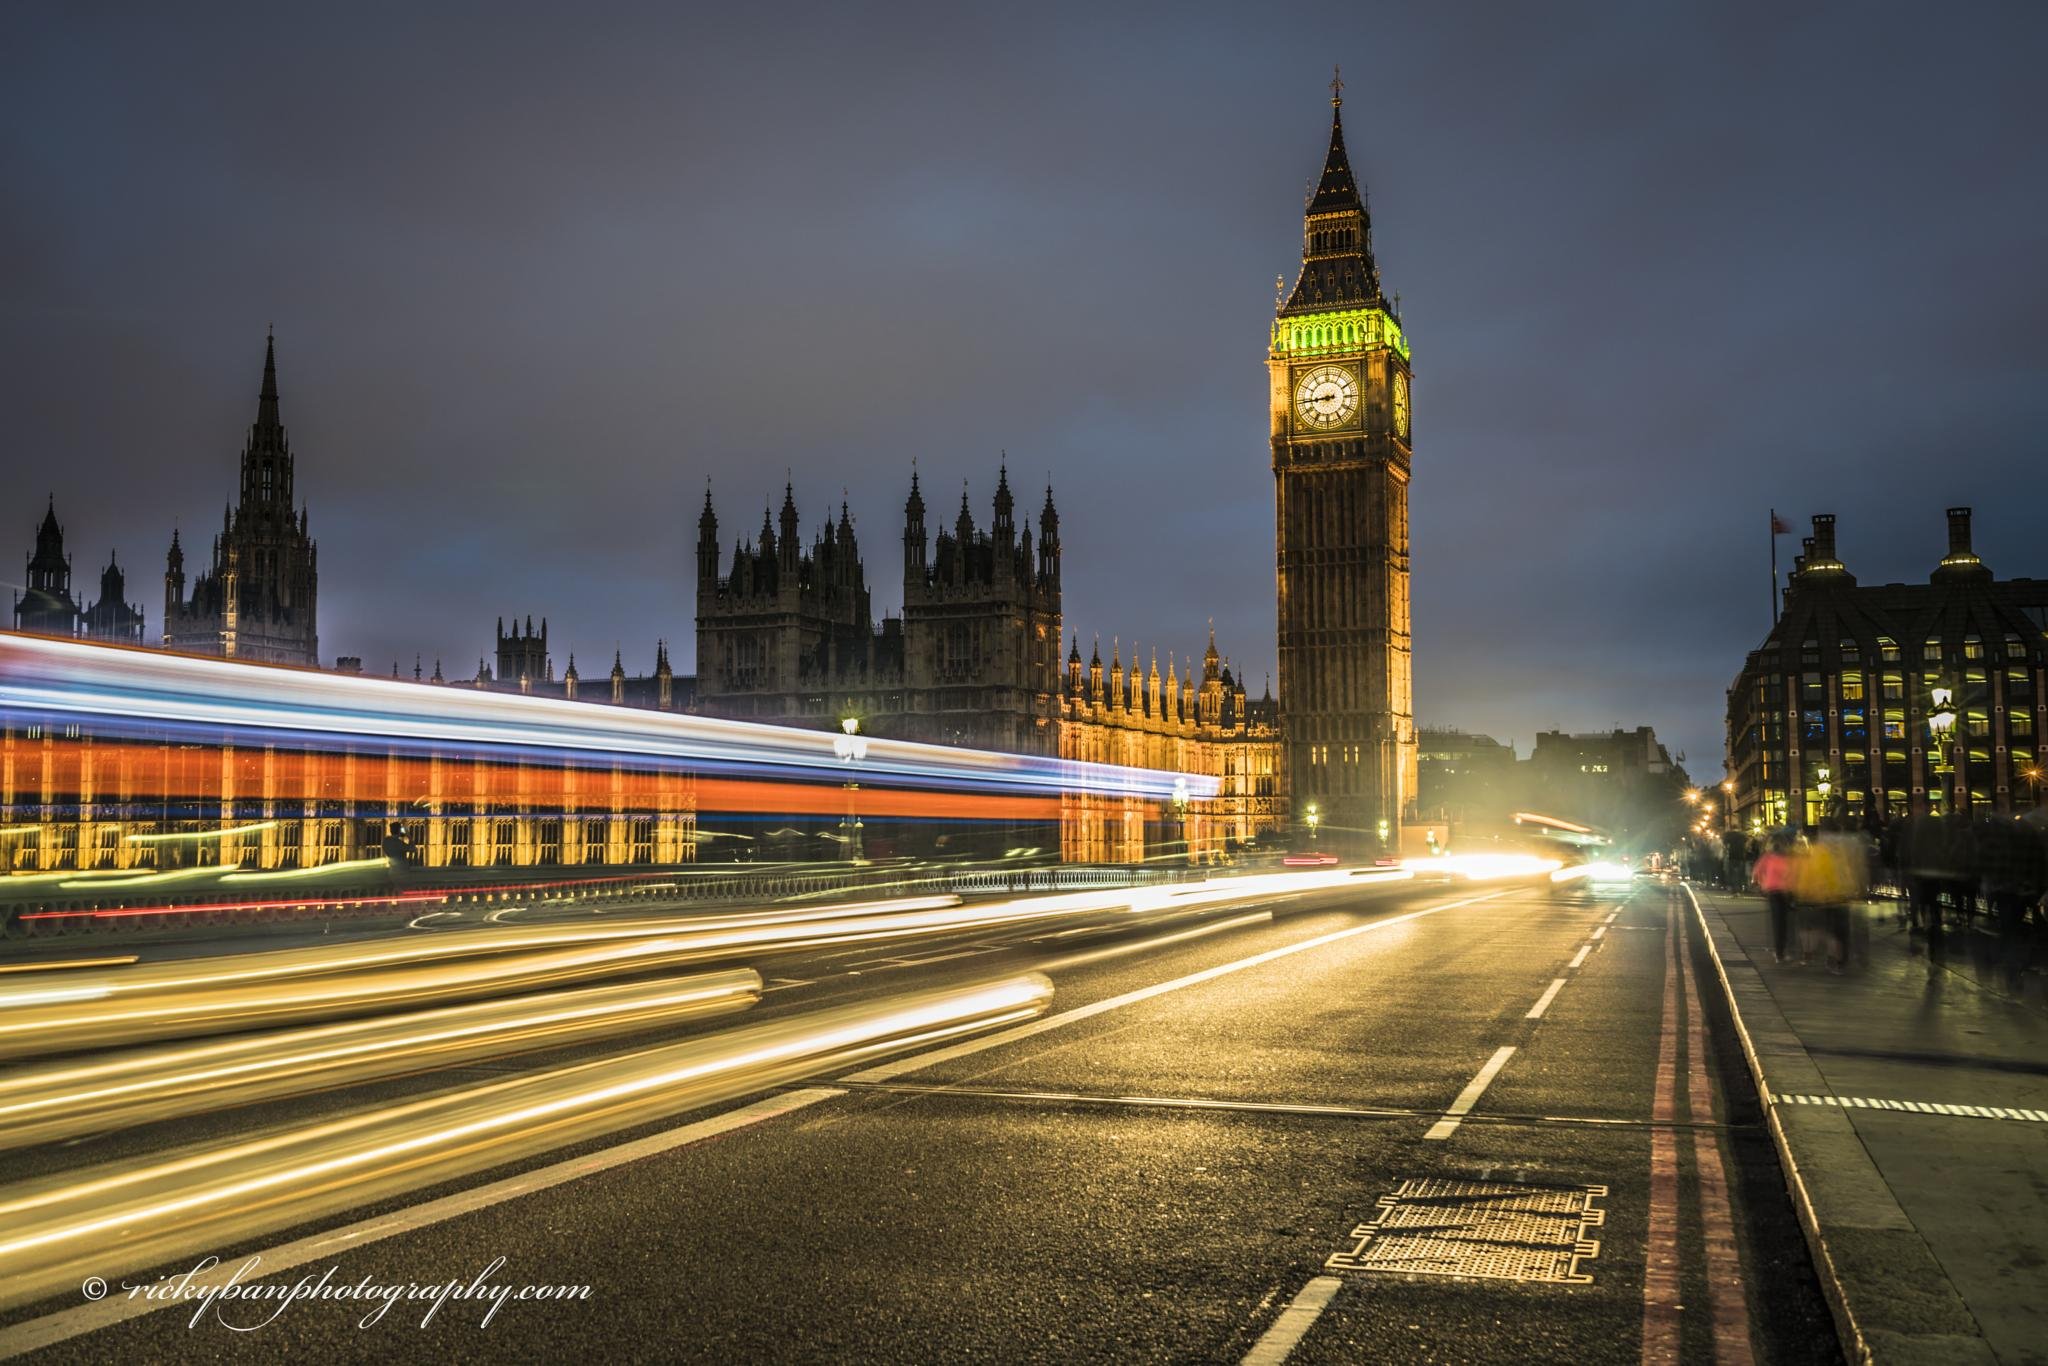 Motion Fun by rickyban_Photography